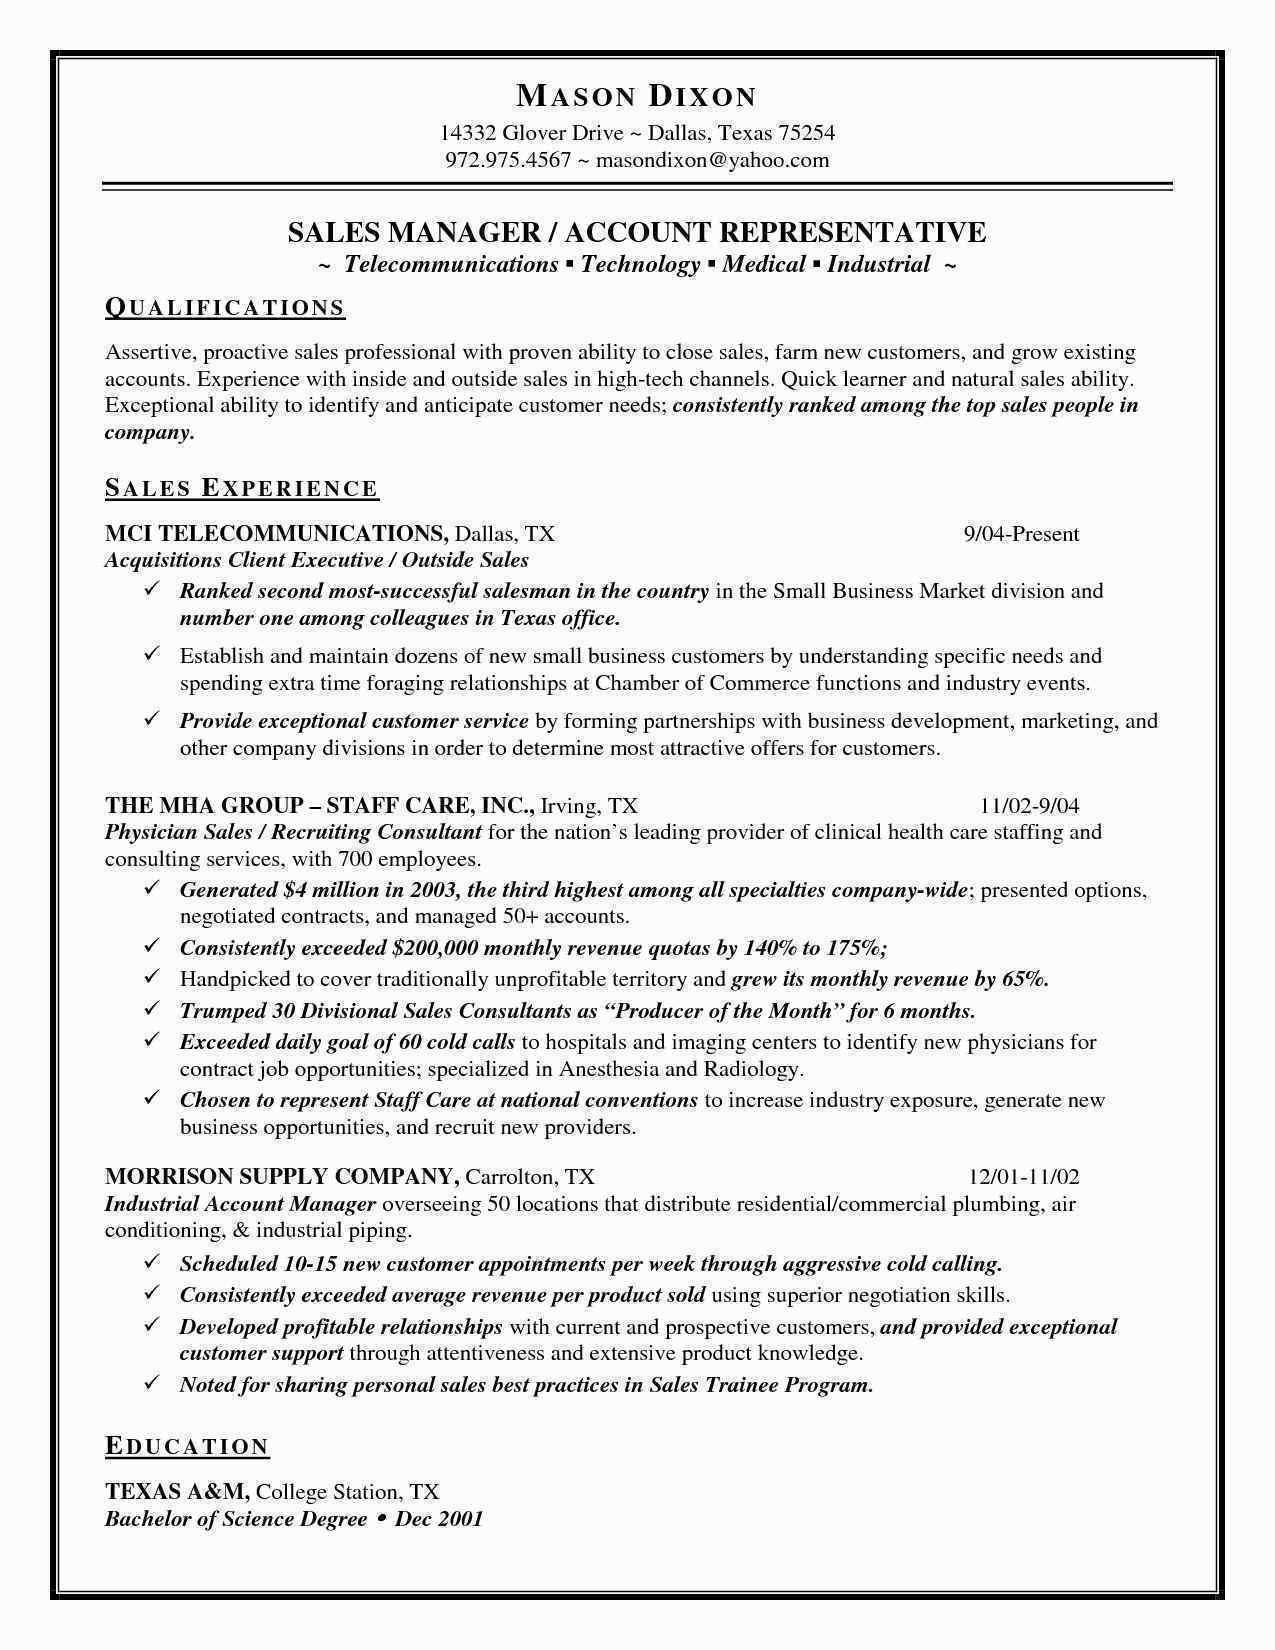 Sales Rep Resume - Resume Samples for Sales Representative New Sales Resume Sample New